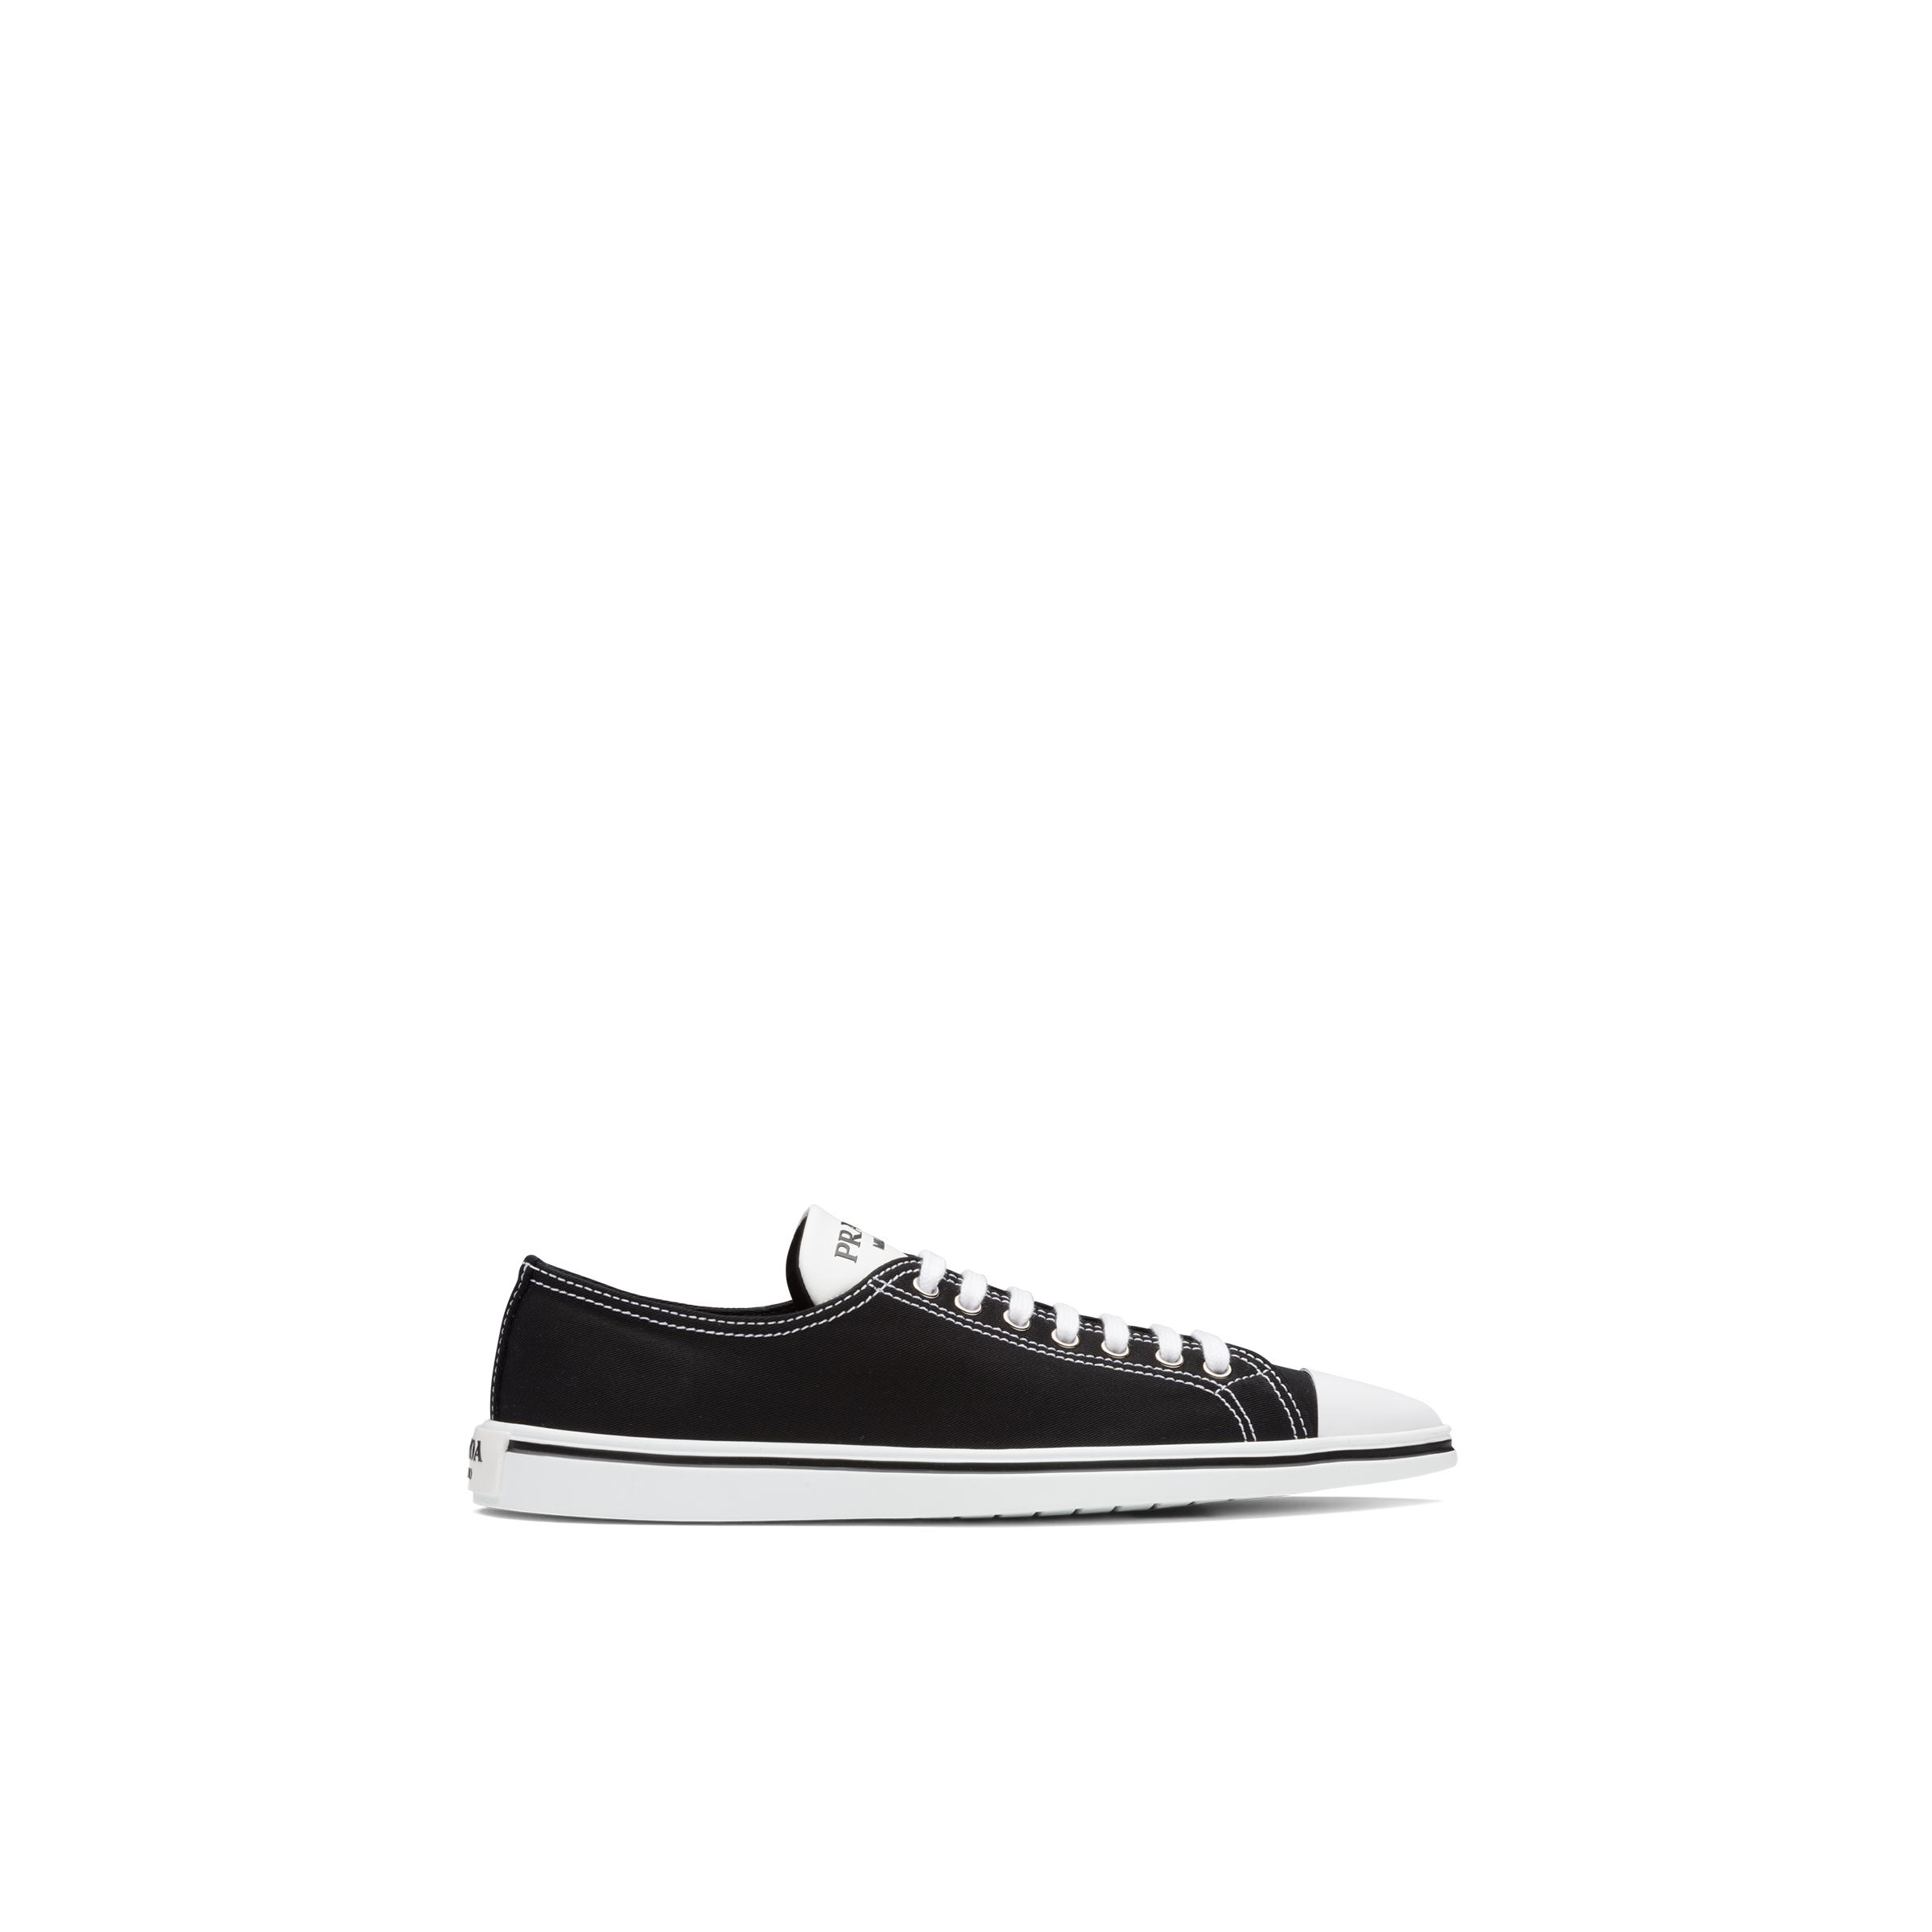 Synthesis Sneakers Women Black 2